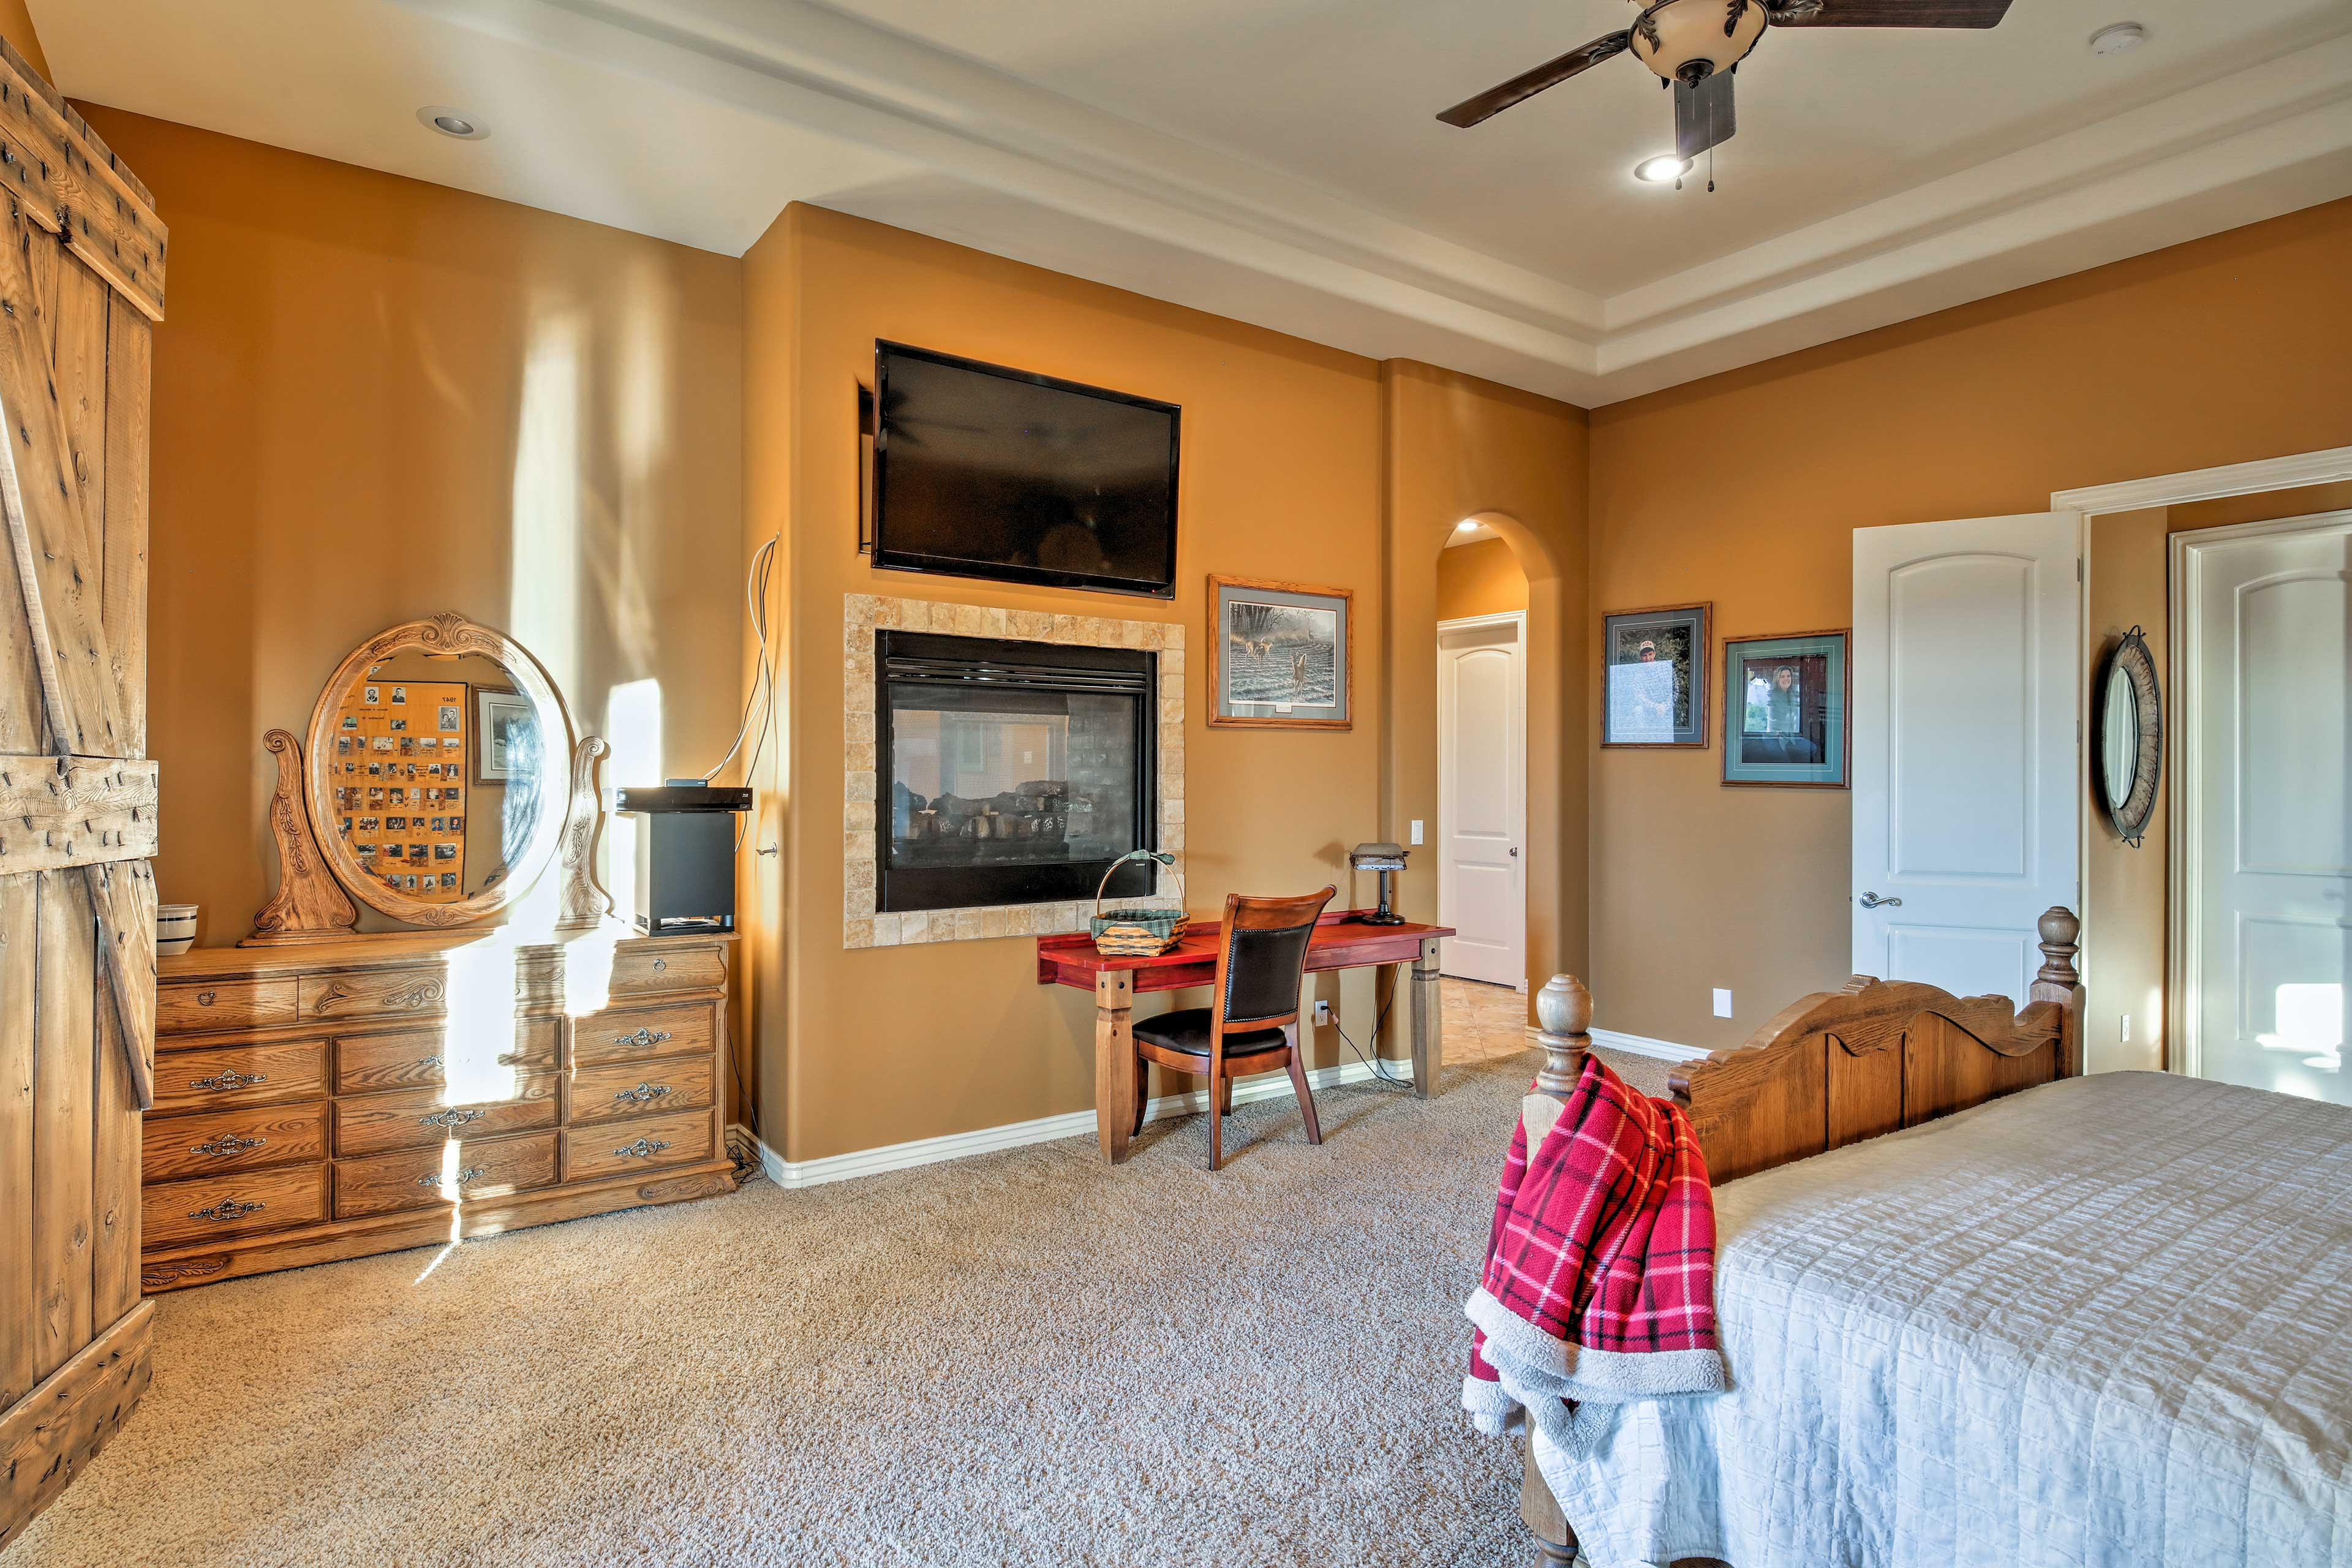 The bedroom boasts a queen bed, gas fireplace and flat-screen TV.